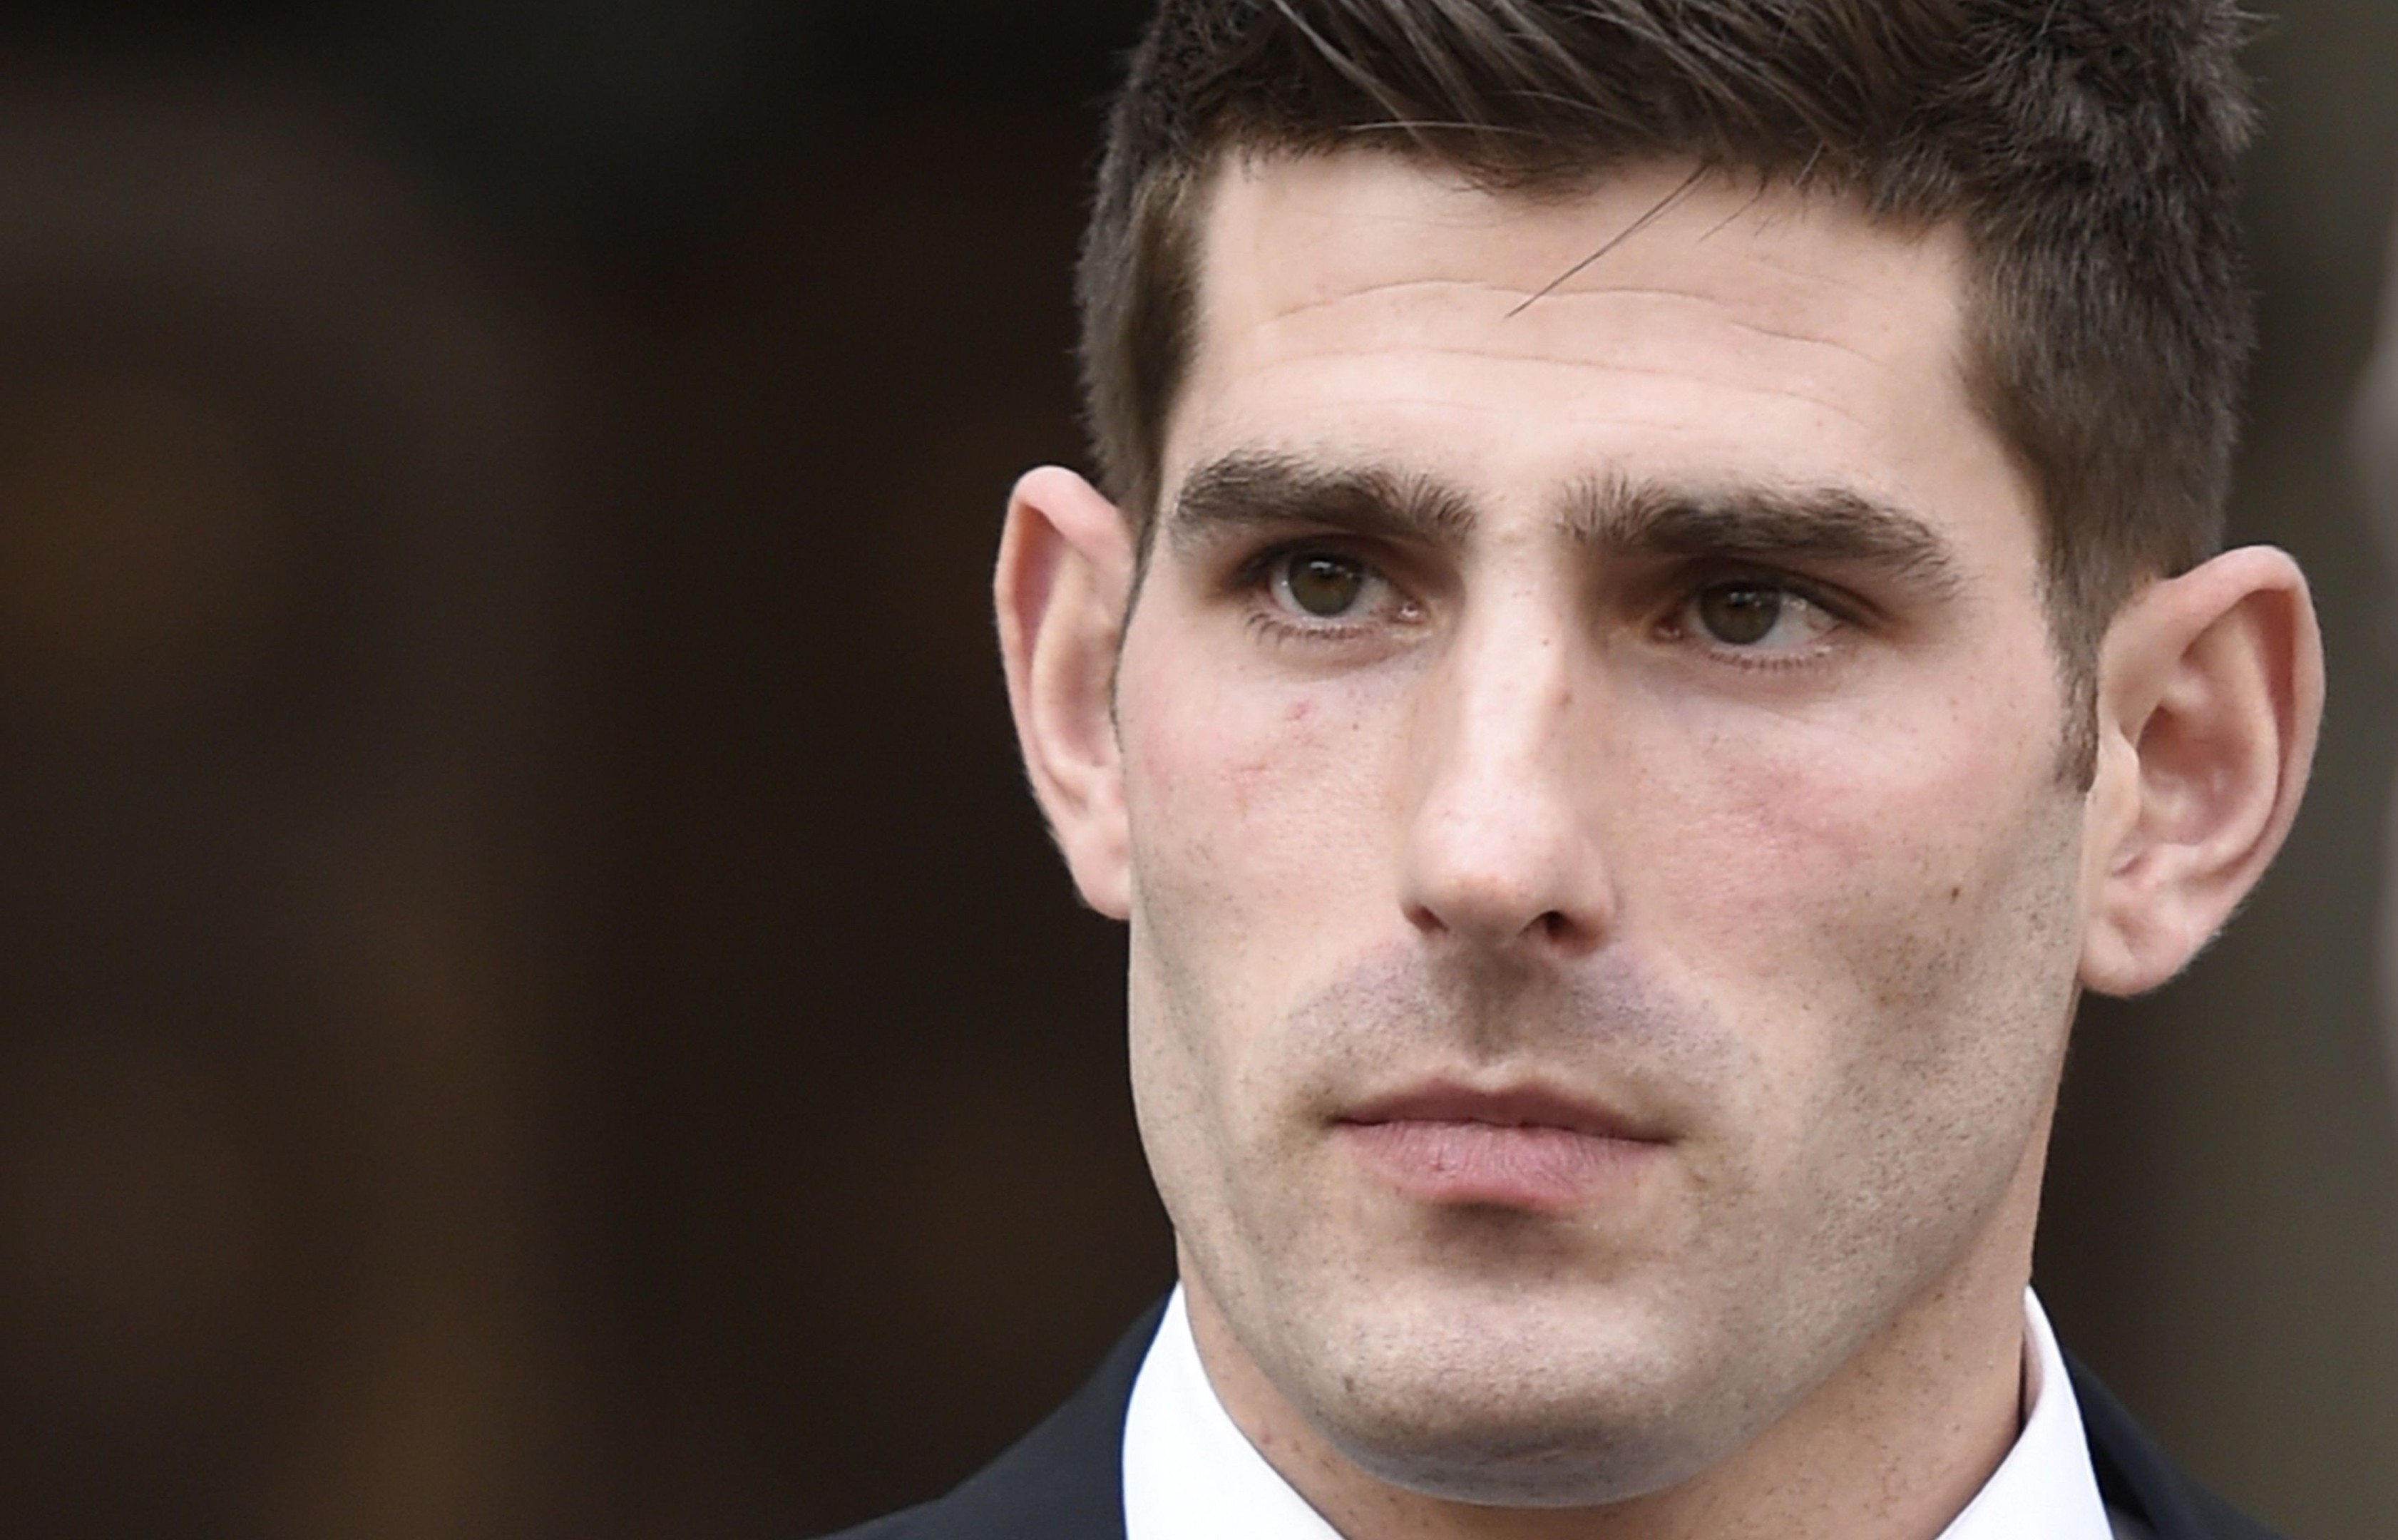 Footballer Ched Evans now faces a retrial after his appeal was successful.